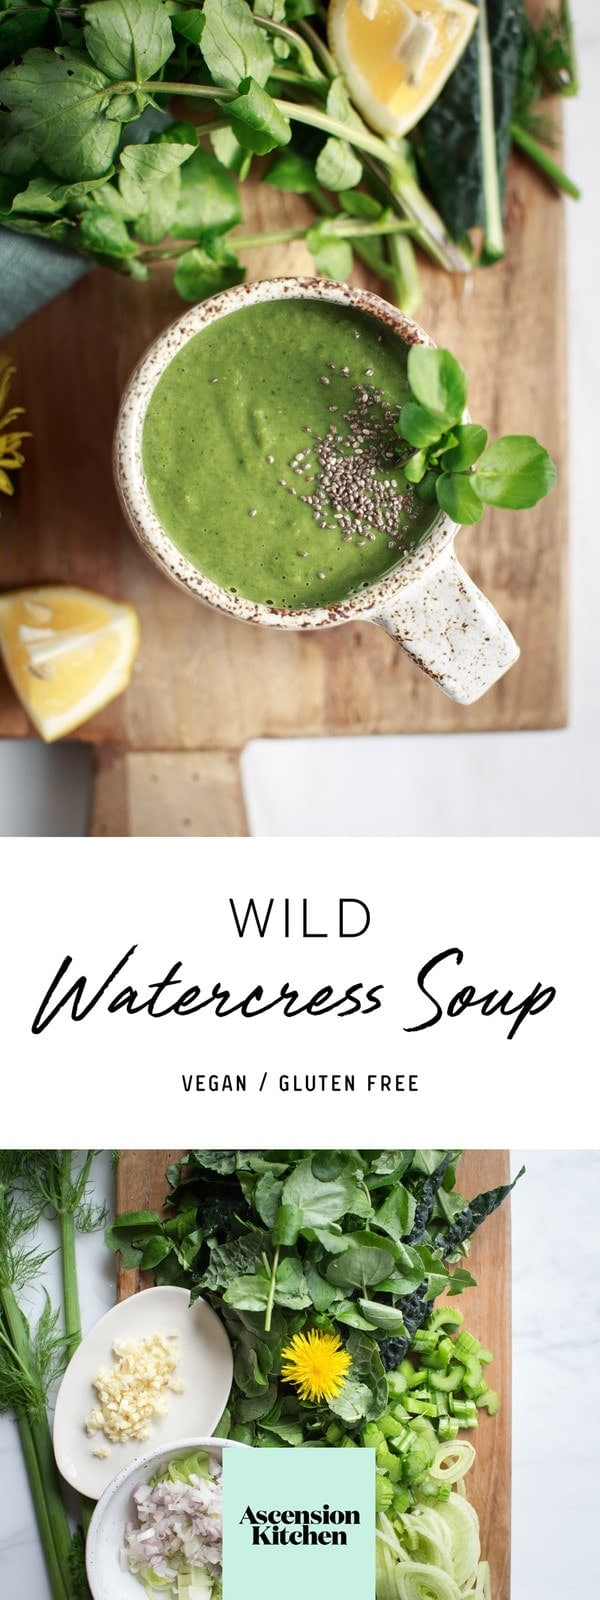 Watercress soup – the perfect spring cleanse. #DetoxSoup #WatercressSoup #HealthySoup #GreenSoup #VeganSoup #SoupRecipe #AscensionKitchen   // Pin to your own inspiration board! //